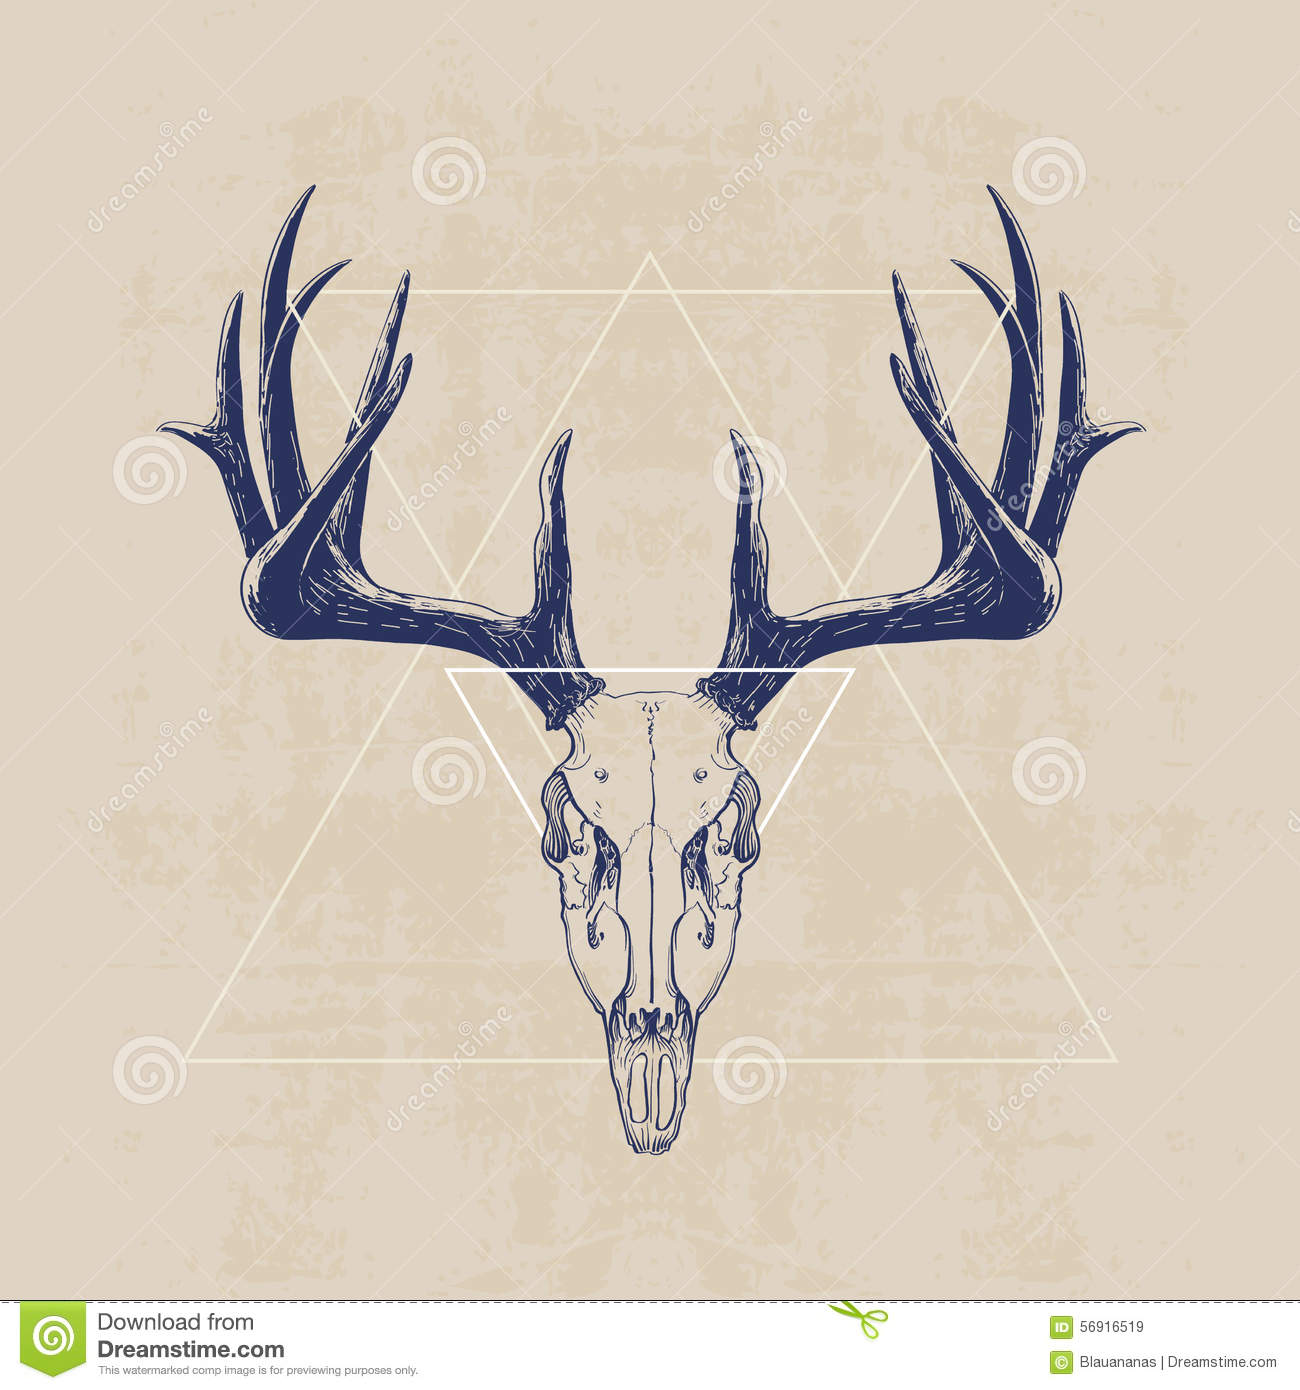 Deer skull stock vector. Illustration of design, vector - 56916519